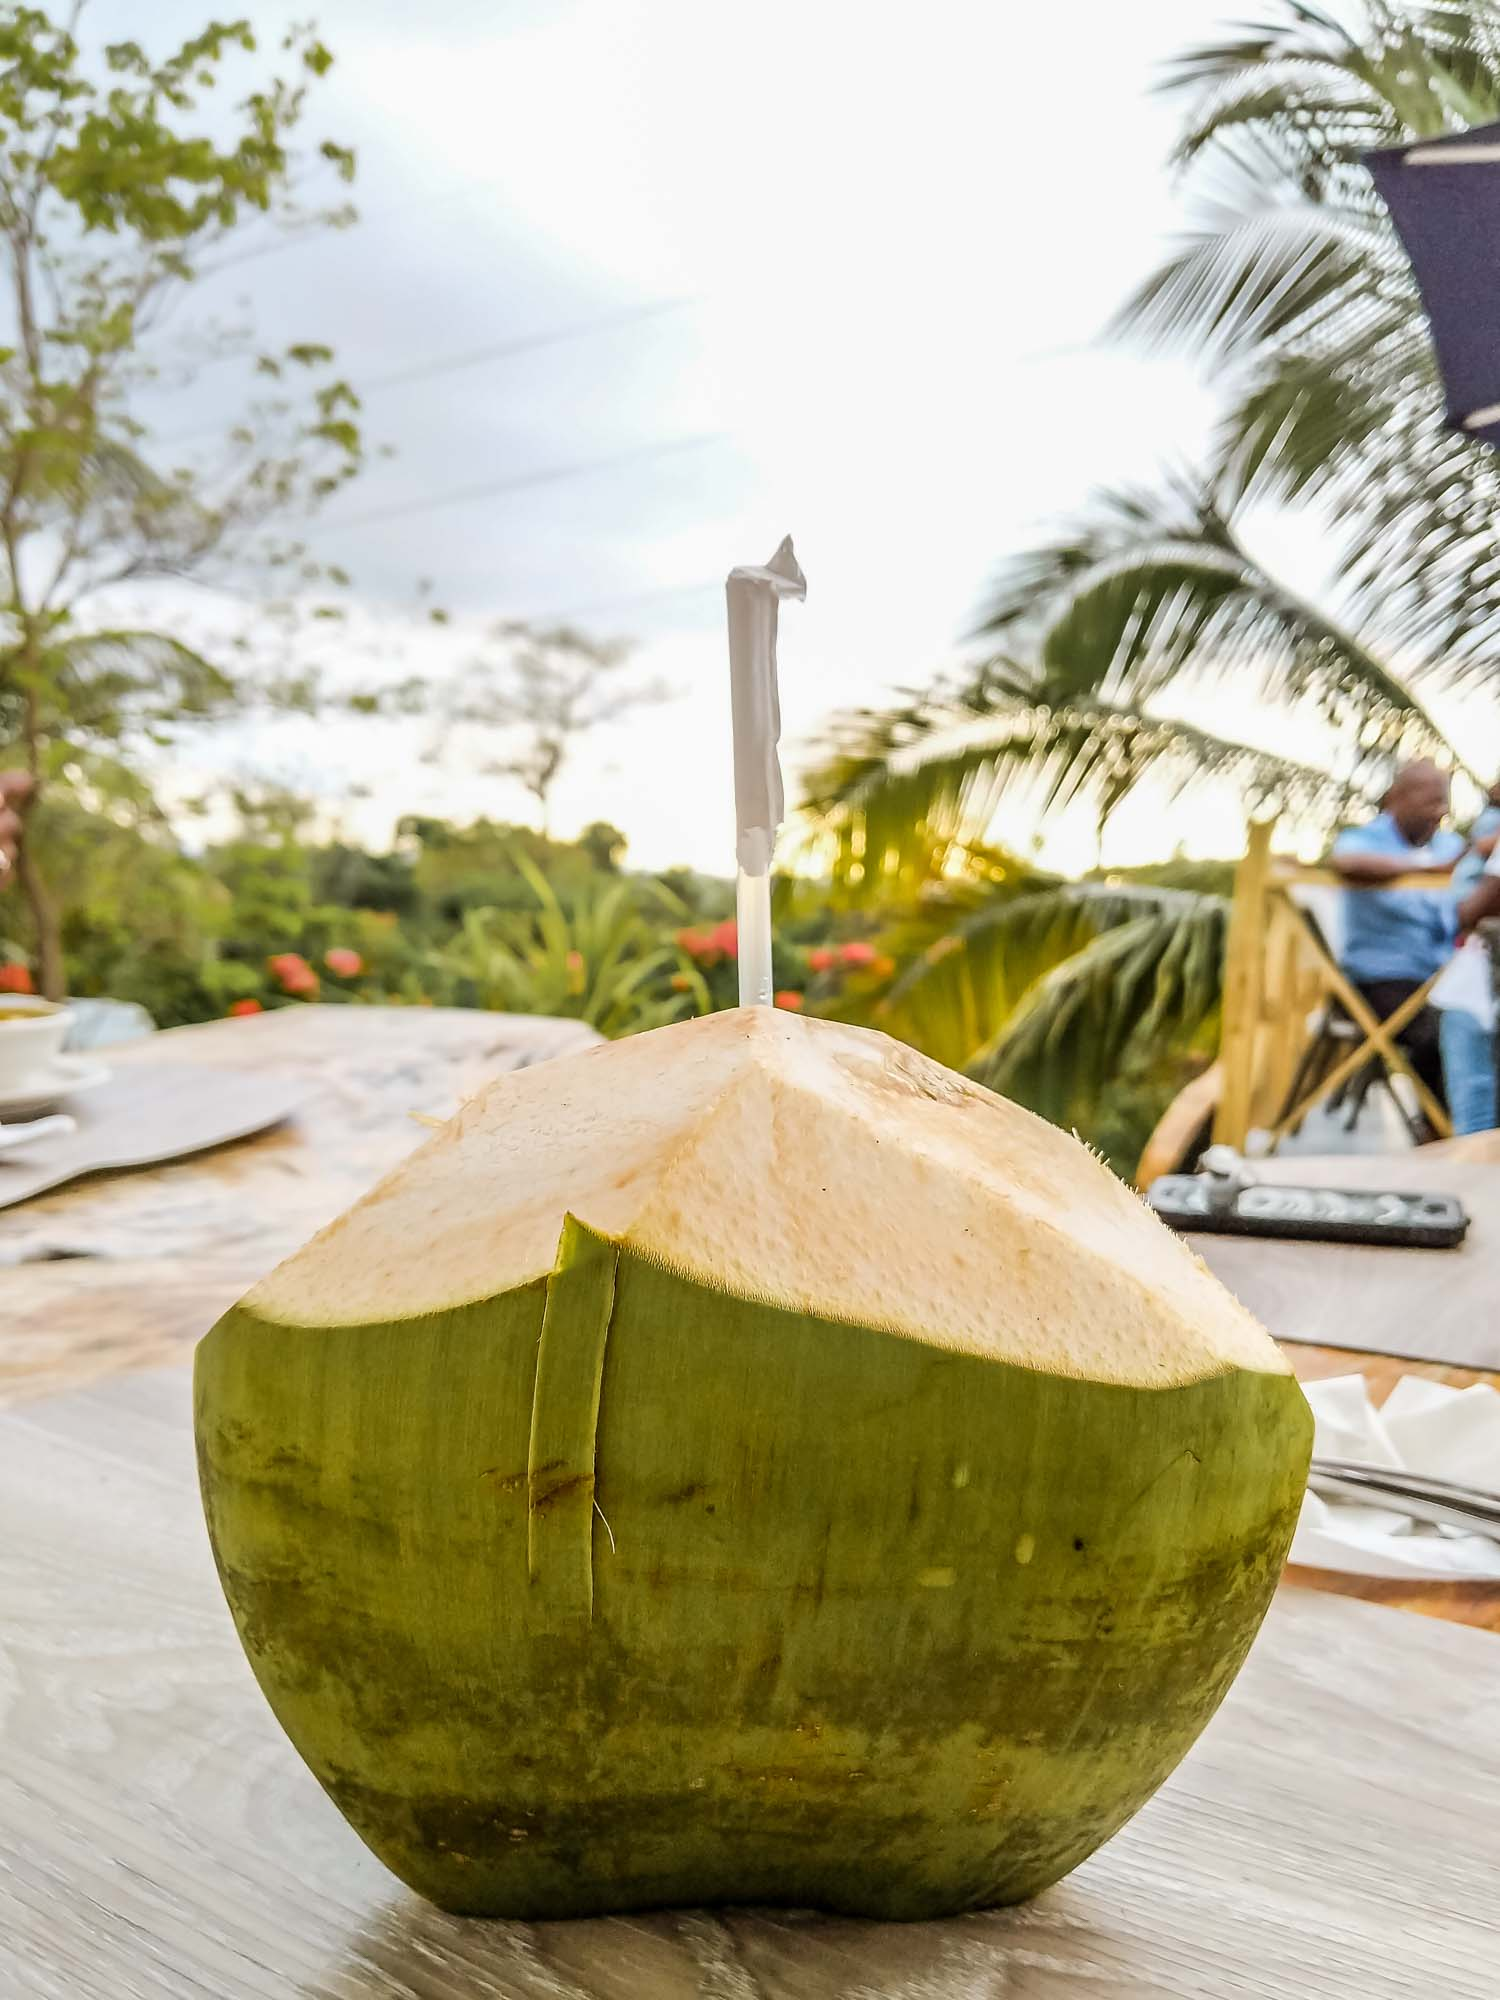 Coconut water in Jamaica at a restaurant.